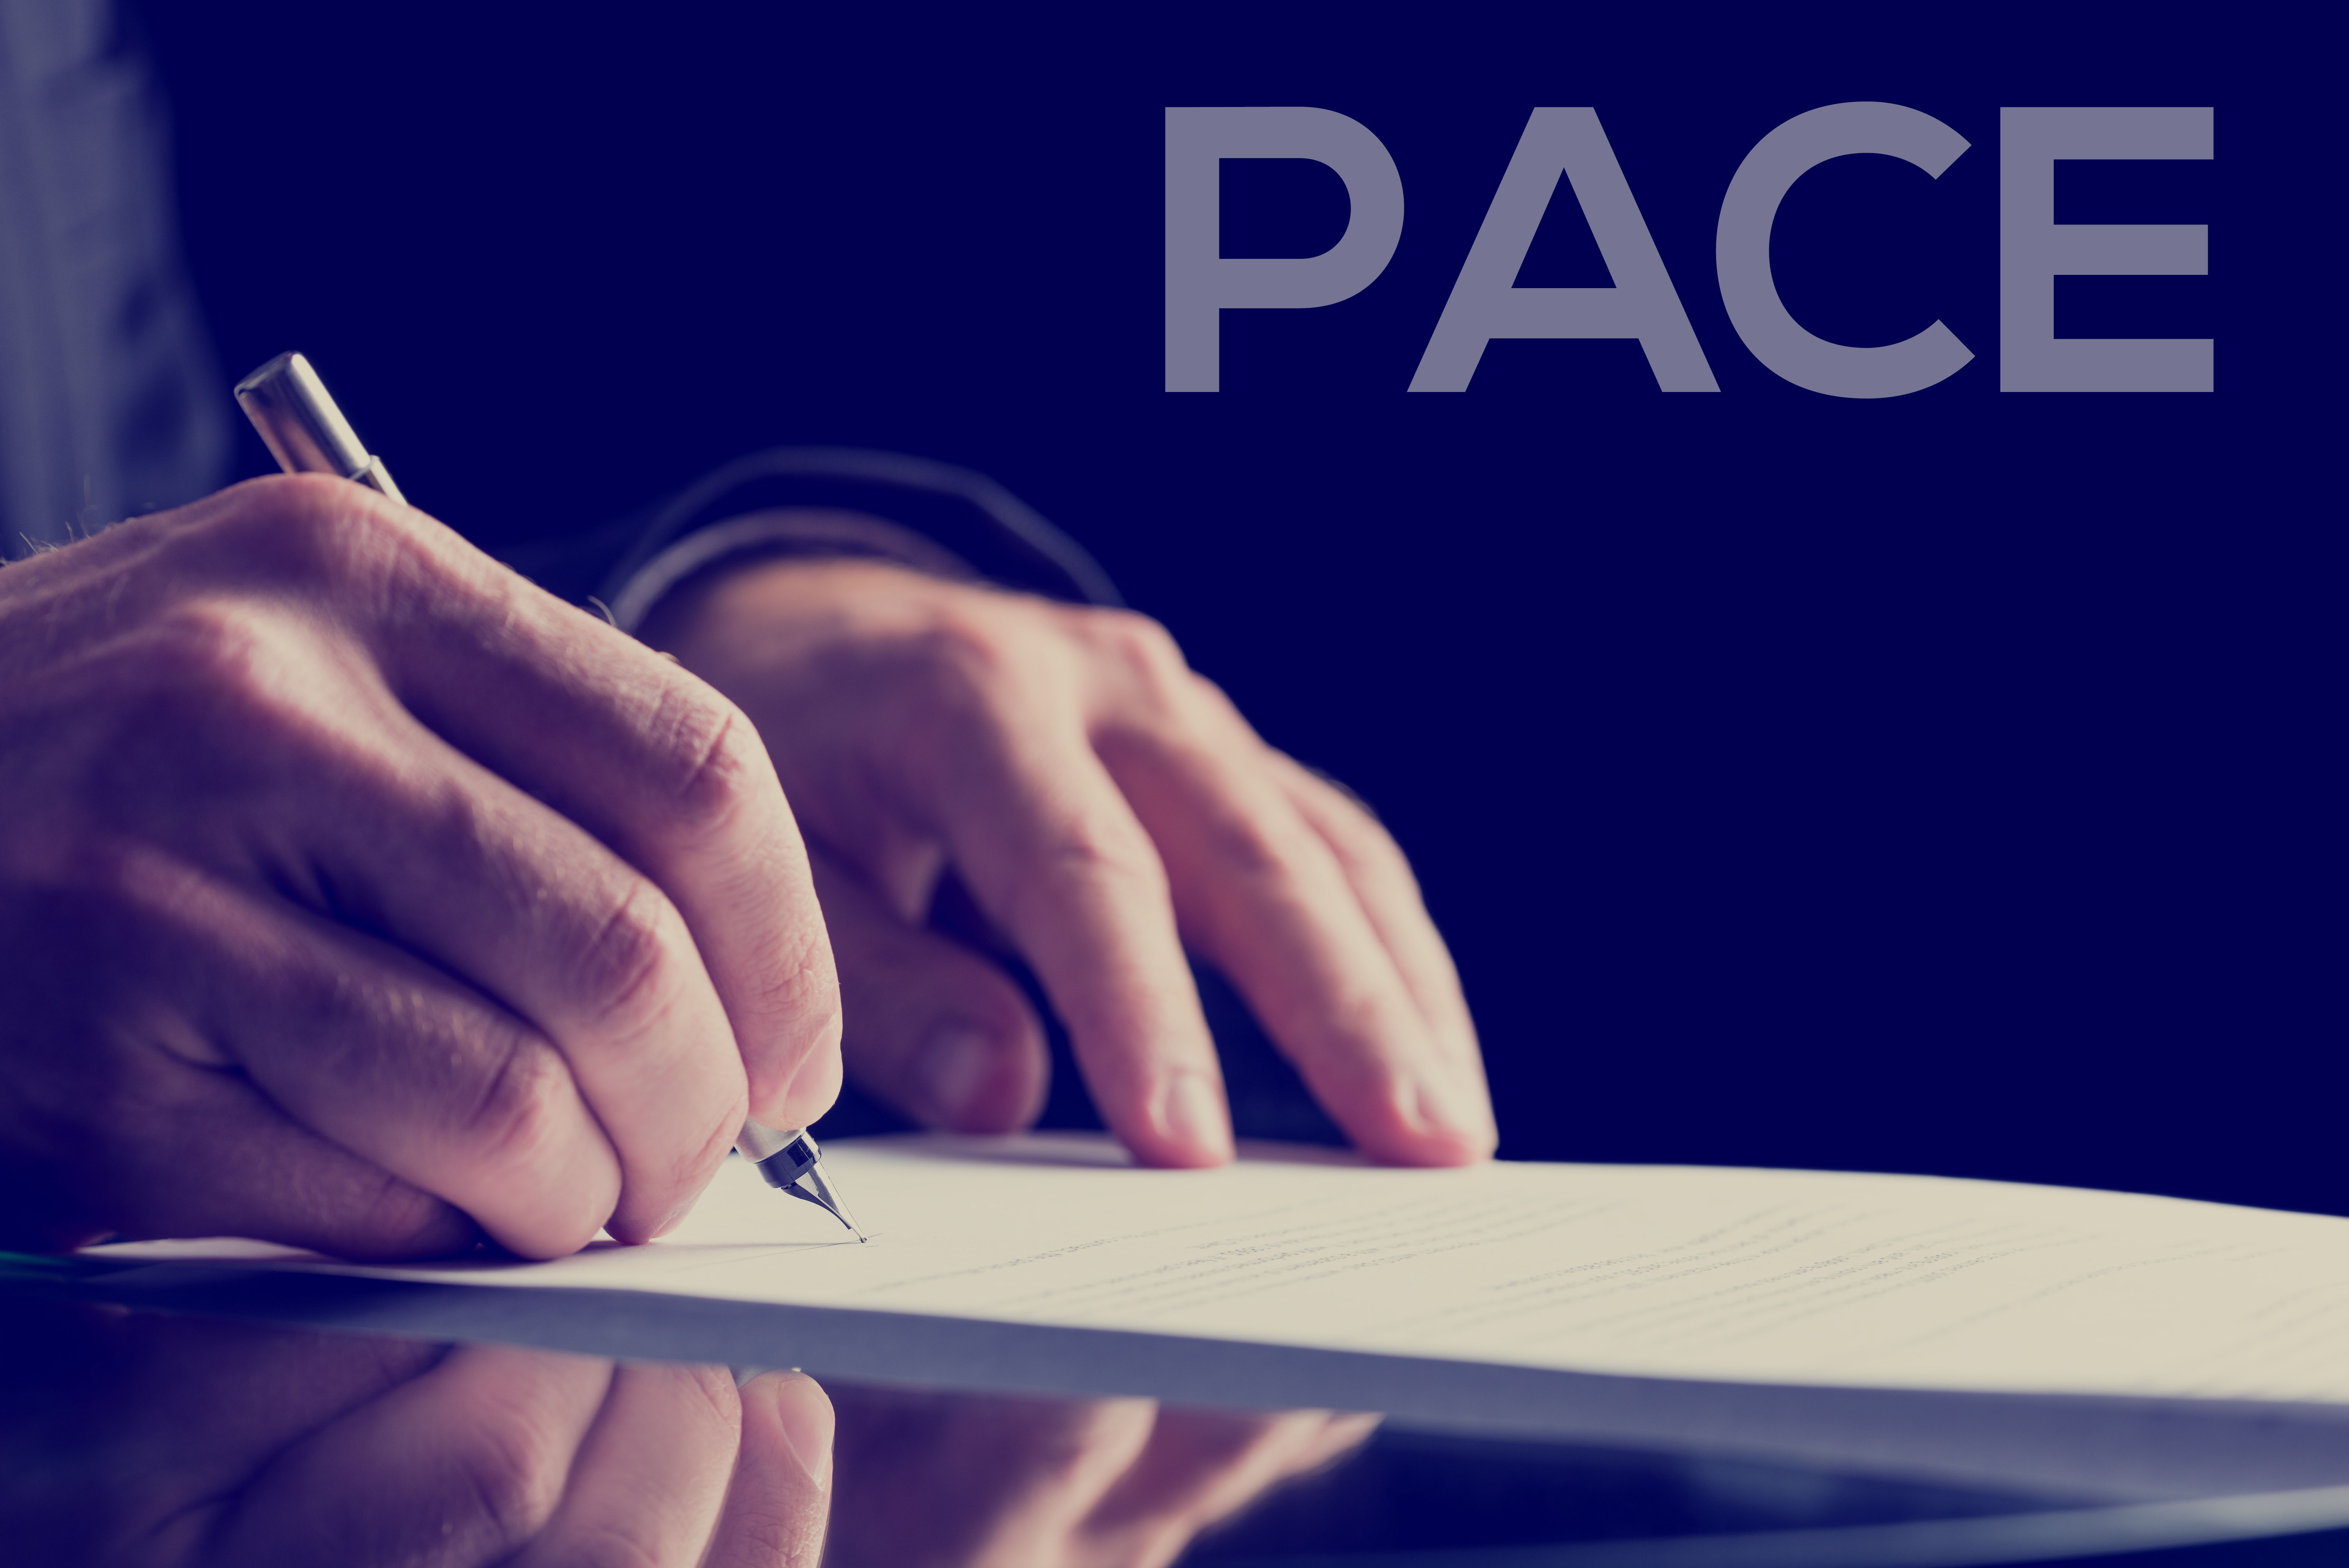 PACE signing